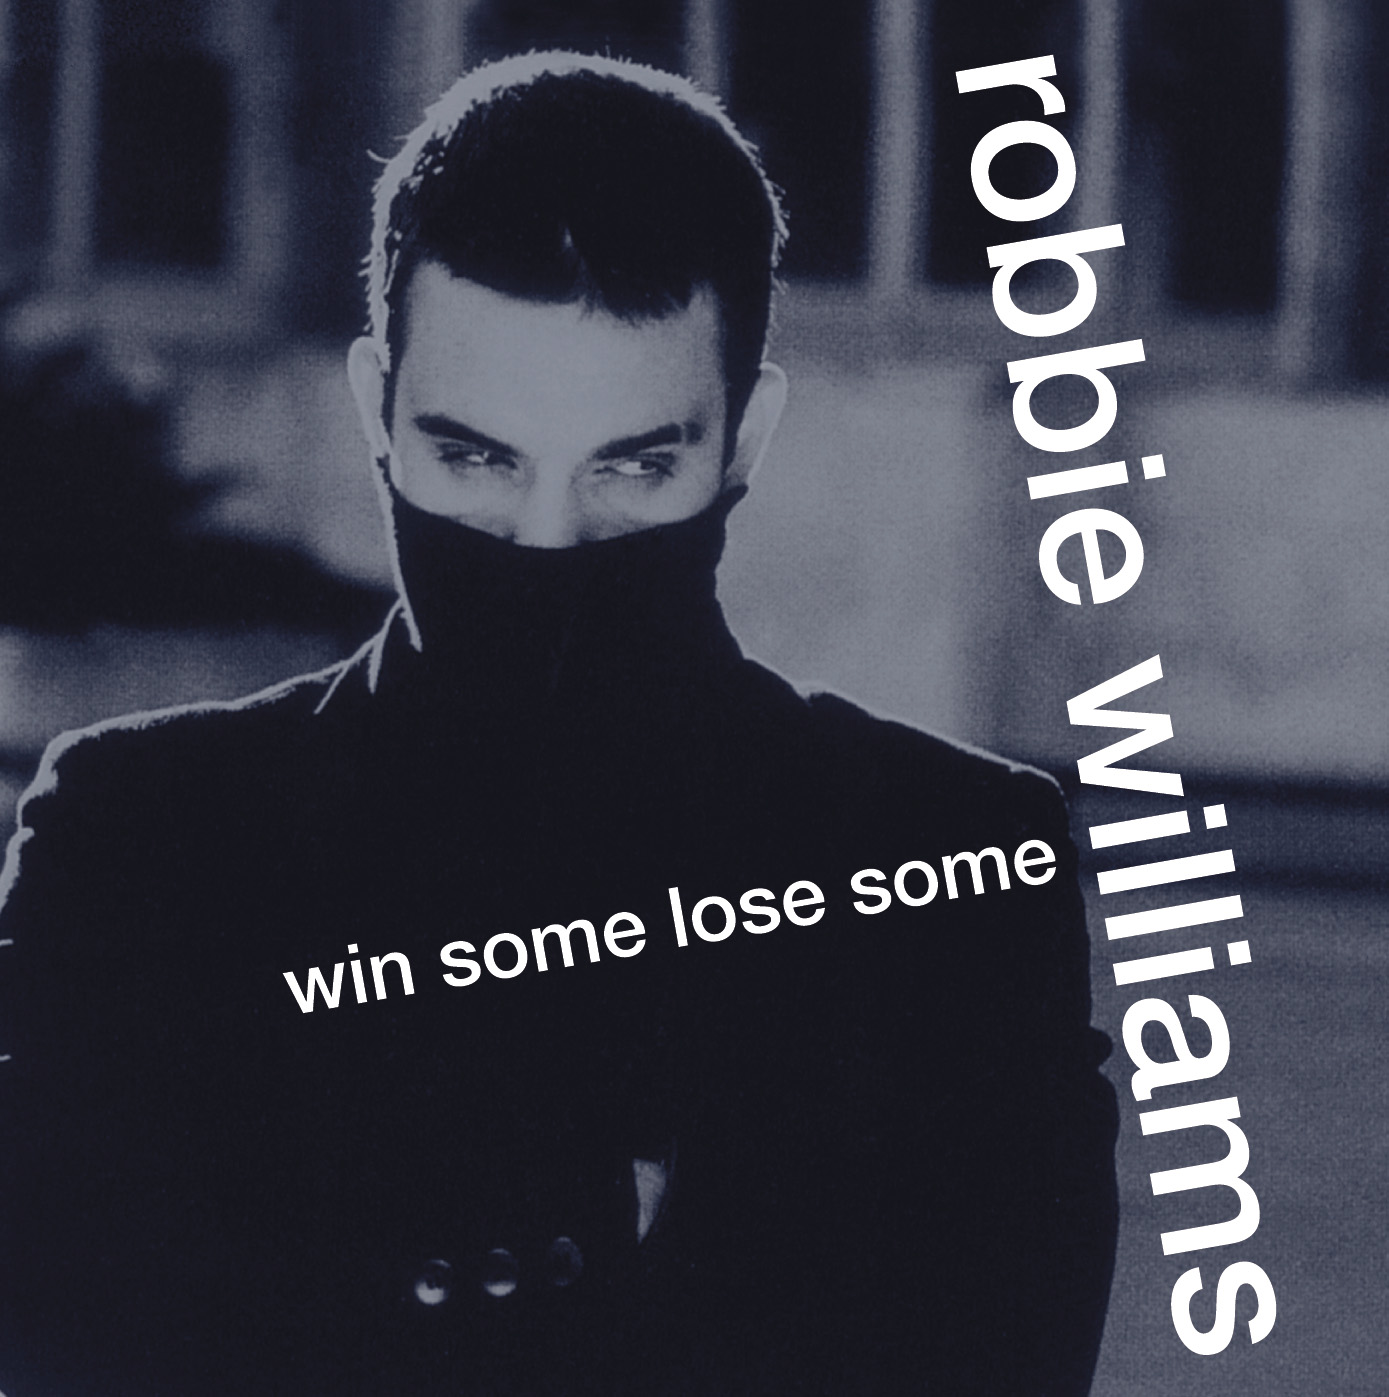 Robbie Williams - Win Some Loose Some Single